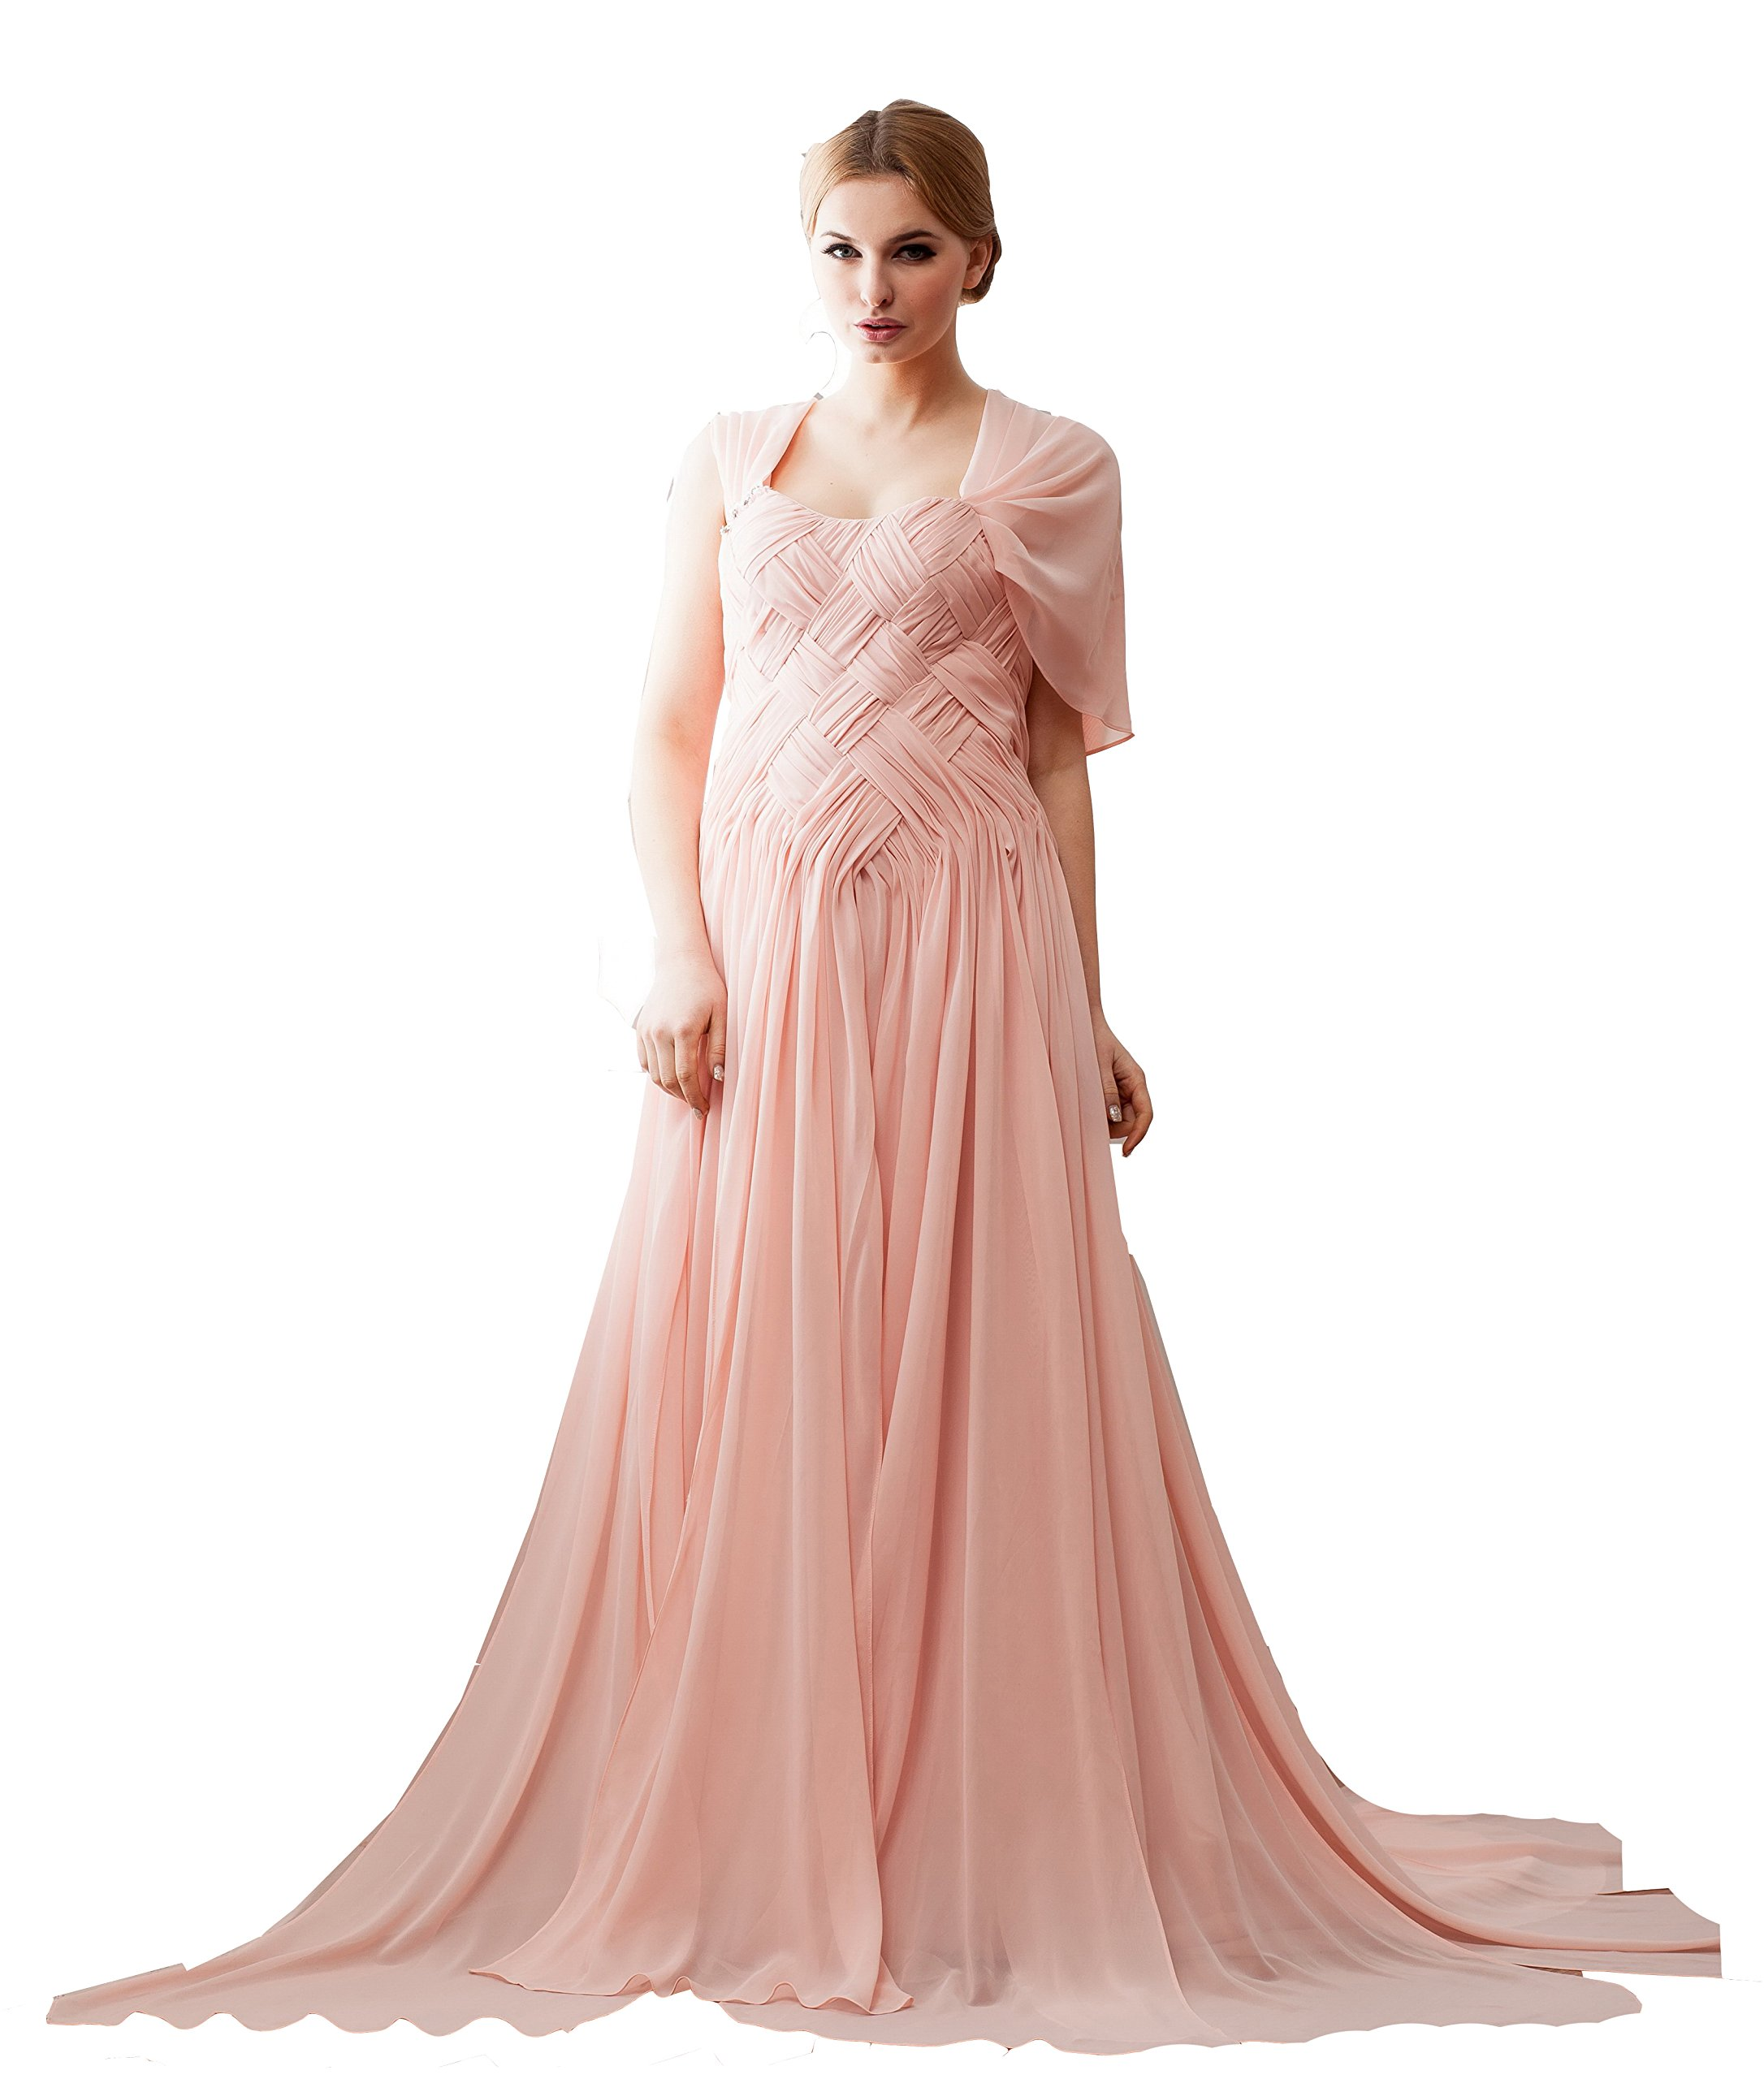 Vogue007 Womens Strapless Pongee Chiffon Wedding Dress with Drape, Pink, 22W